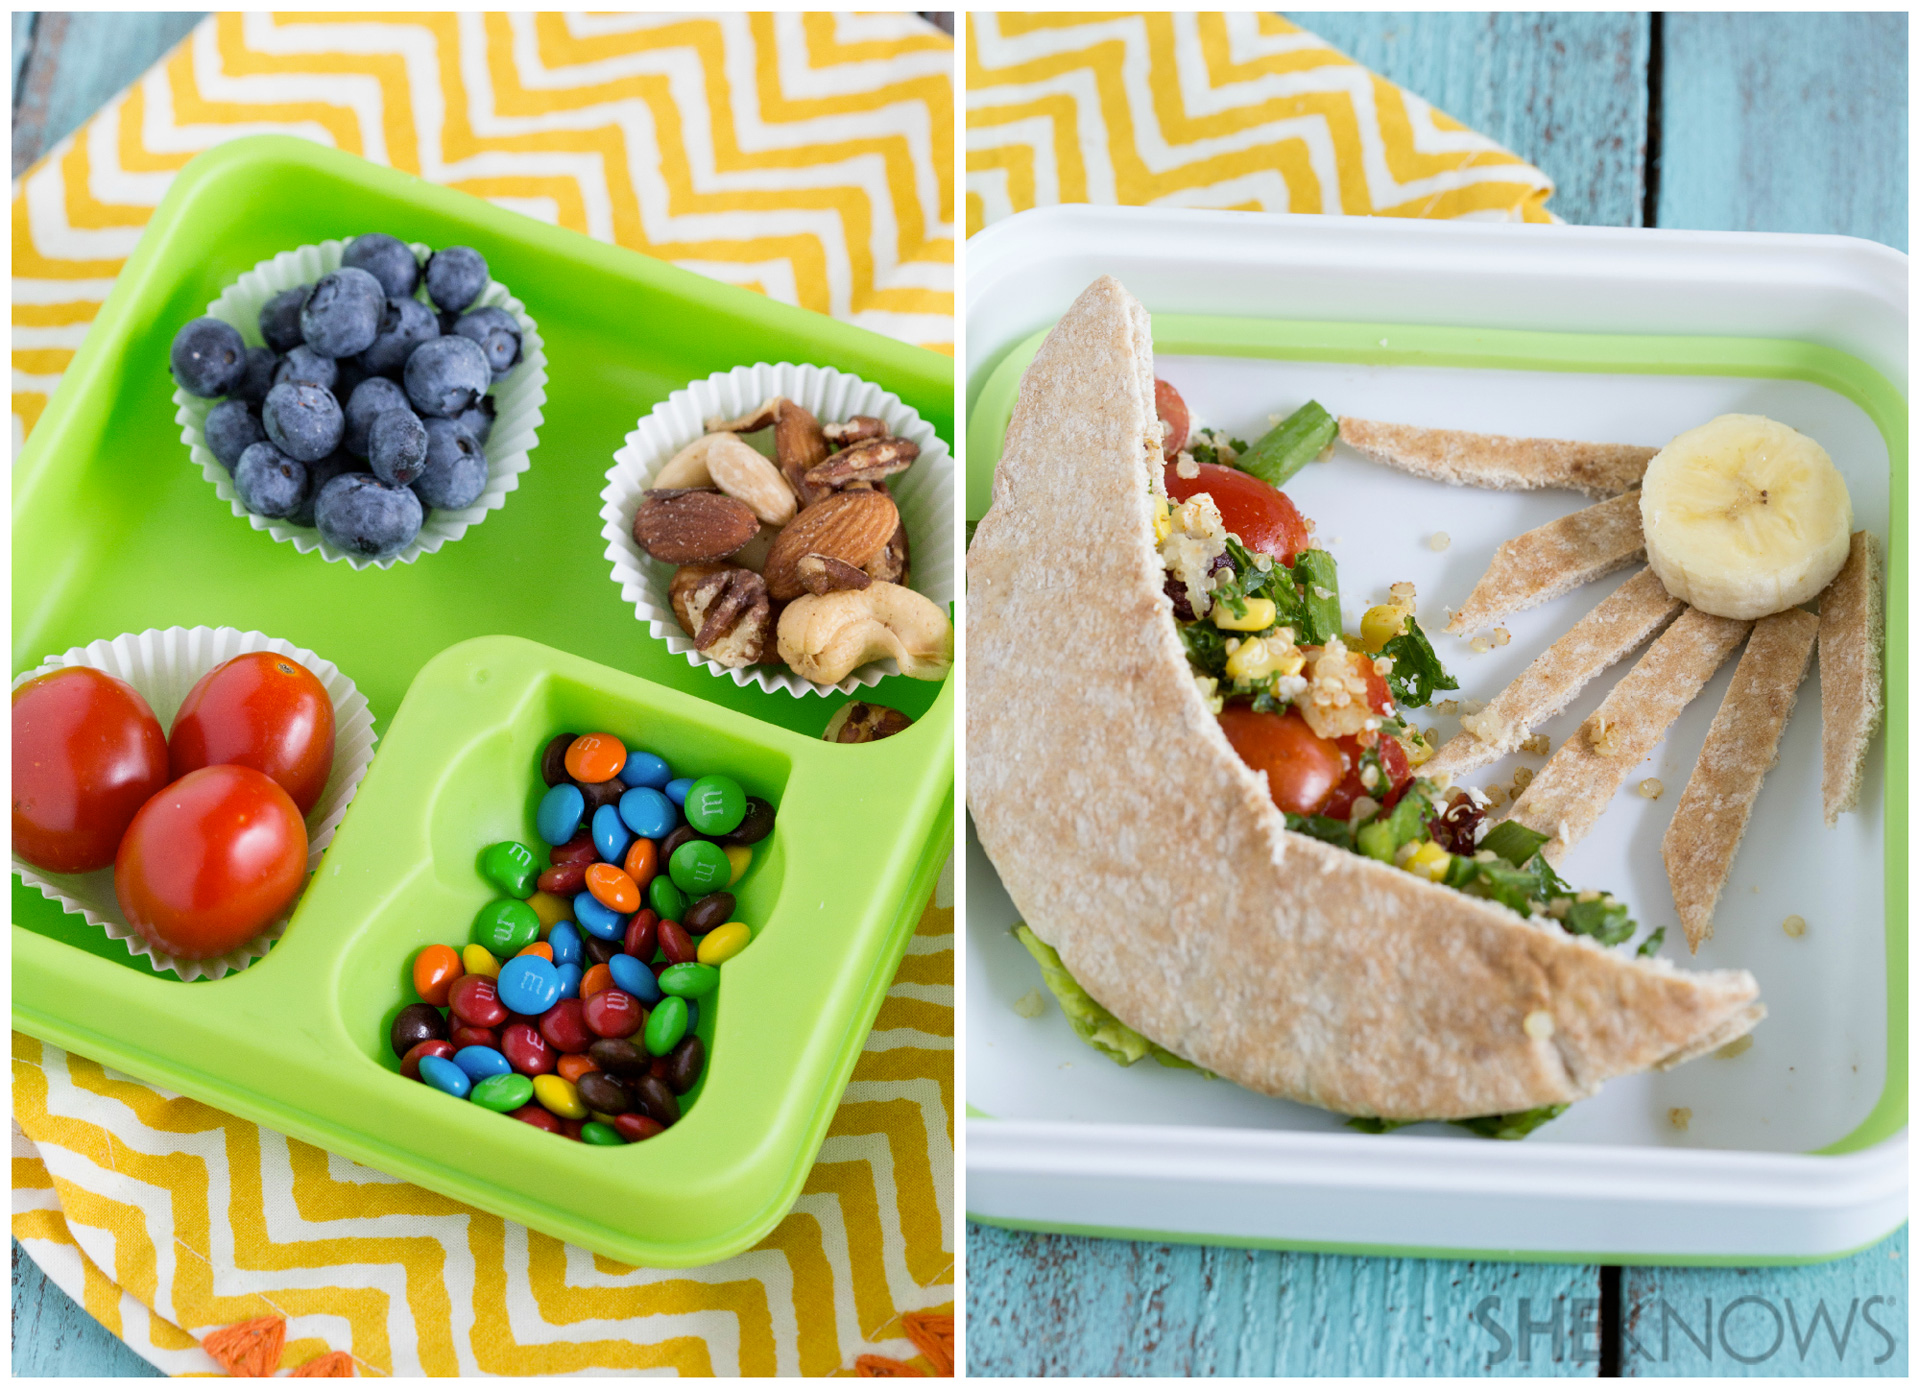 The kids will go crazy for these super-fun and super-easy bento box lunches